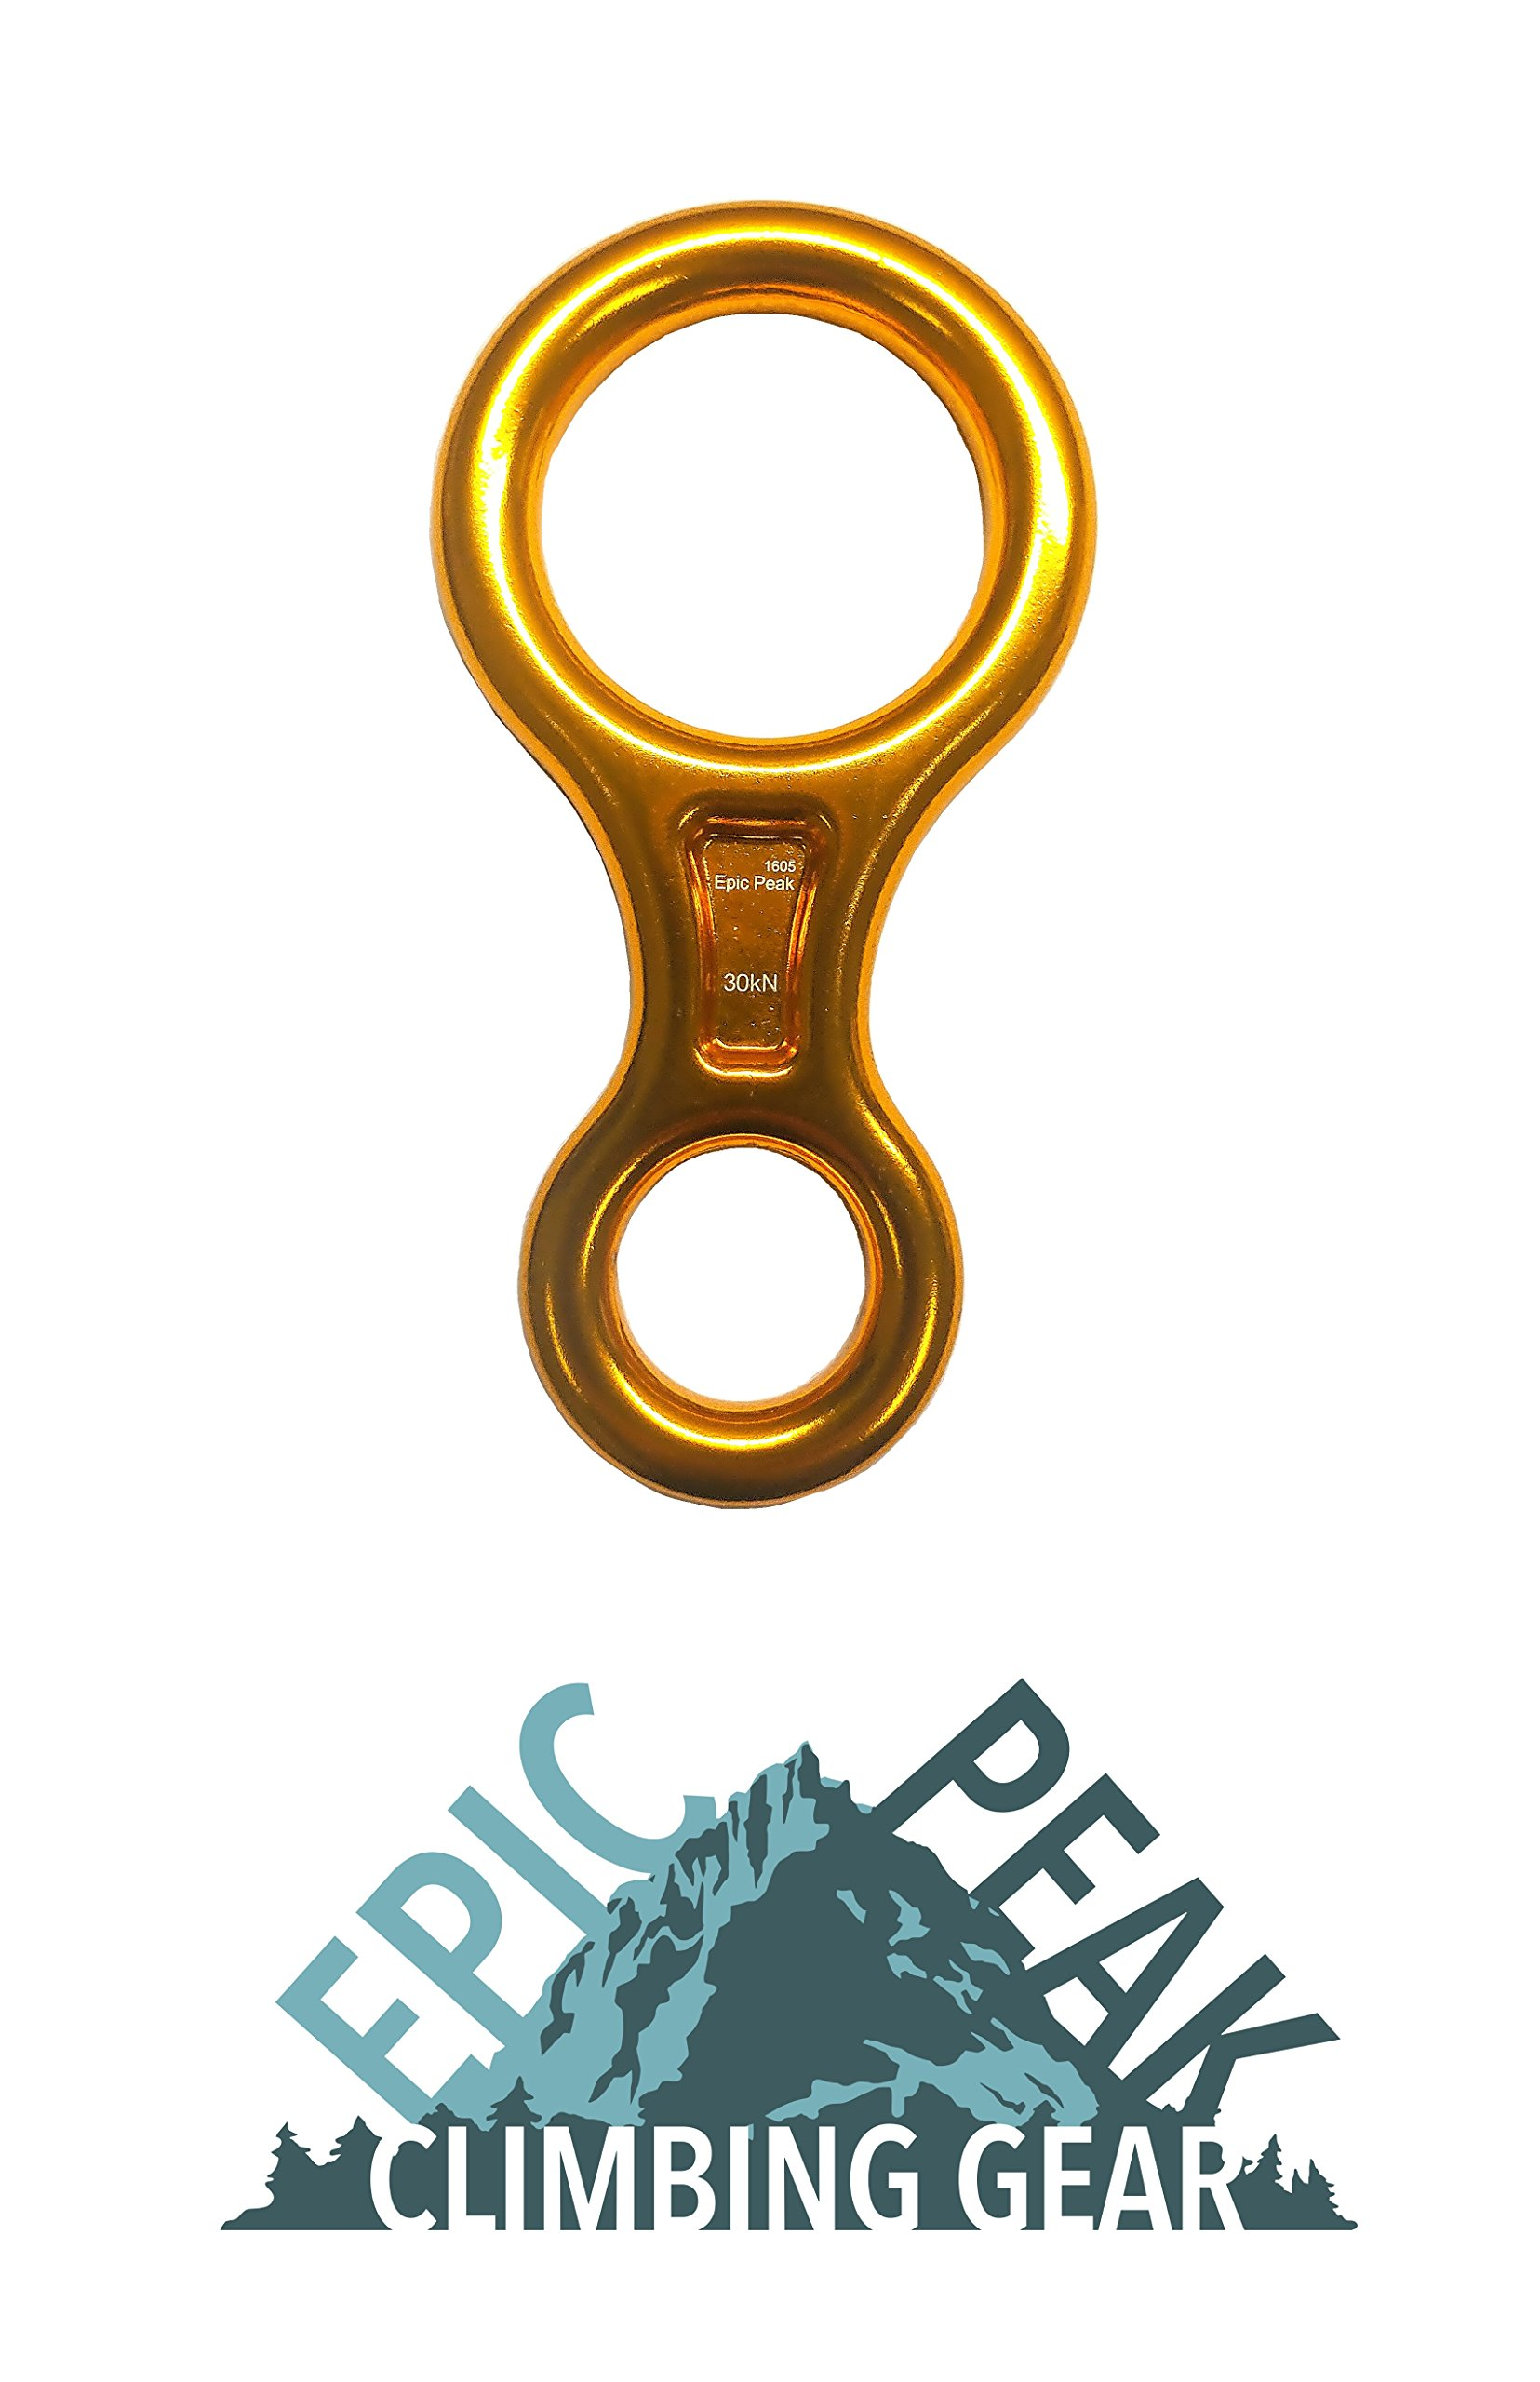 Epic Peak Large Figure 8 Belay Device Descender for Climbing with Free Decal